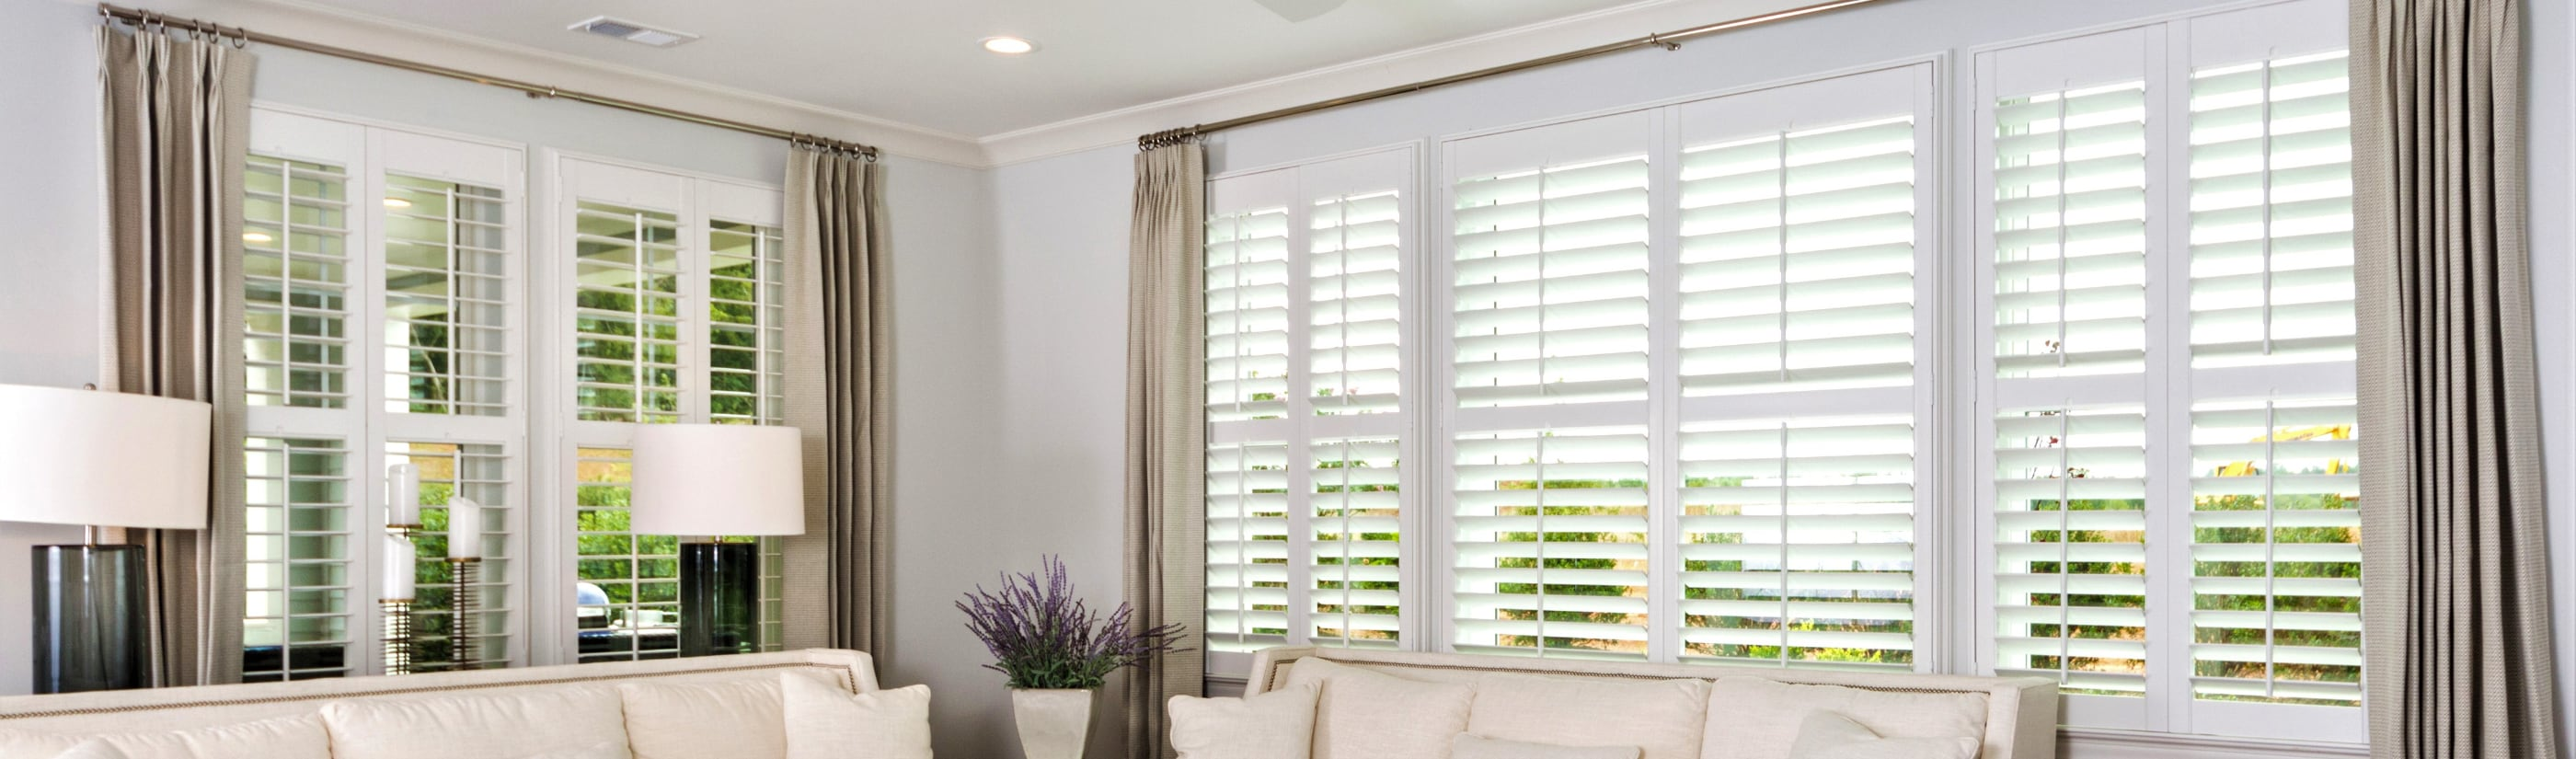 Polywood Shutters Paints In Orlando